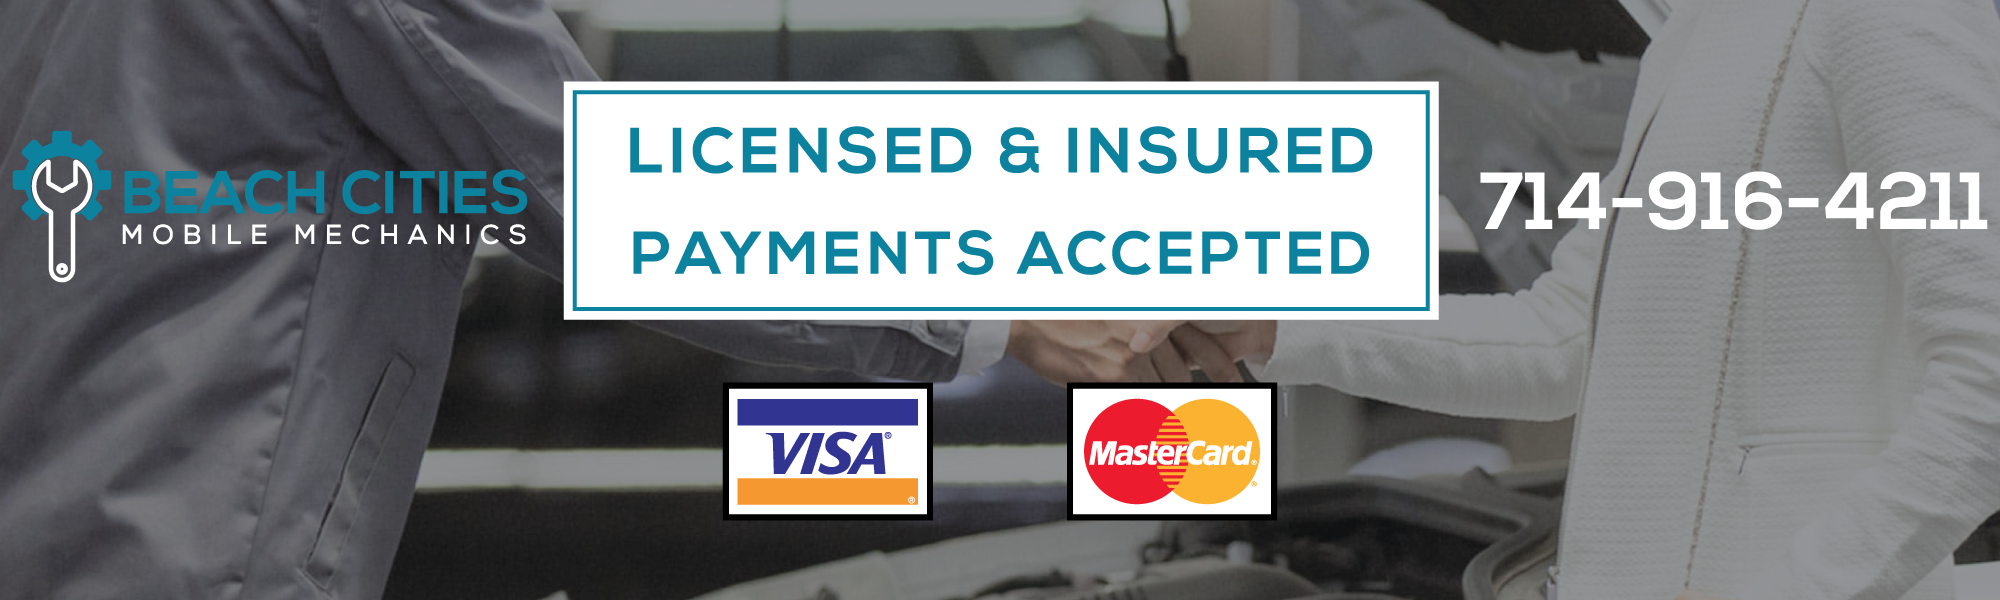 licensed and insured payment